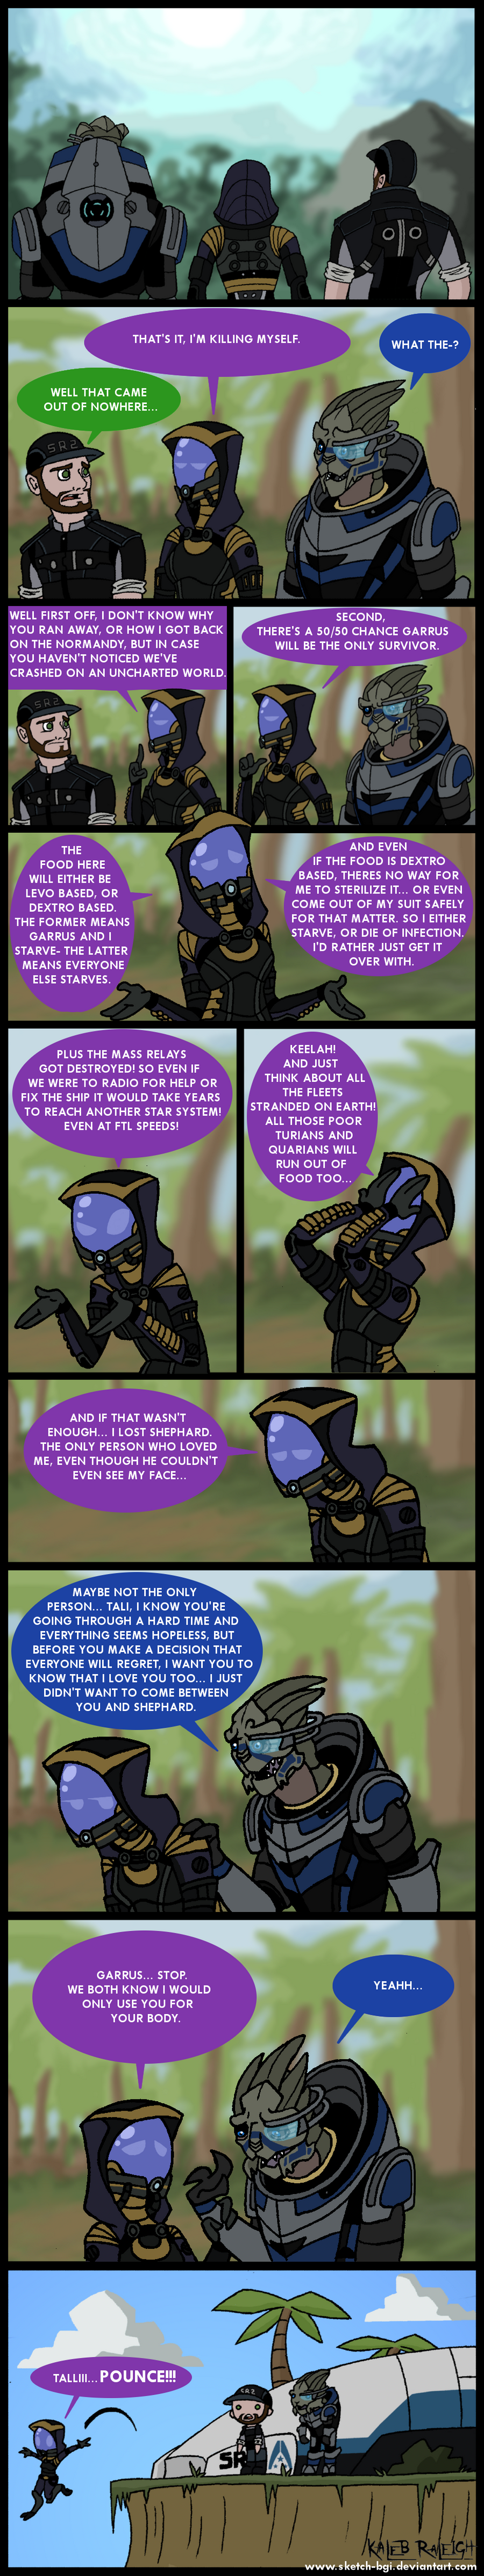 Liara the fall of the shadowbroker studiofow - 4 4